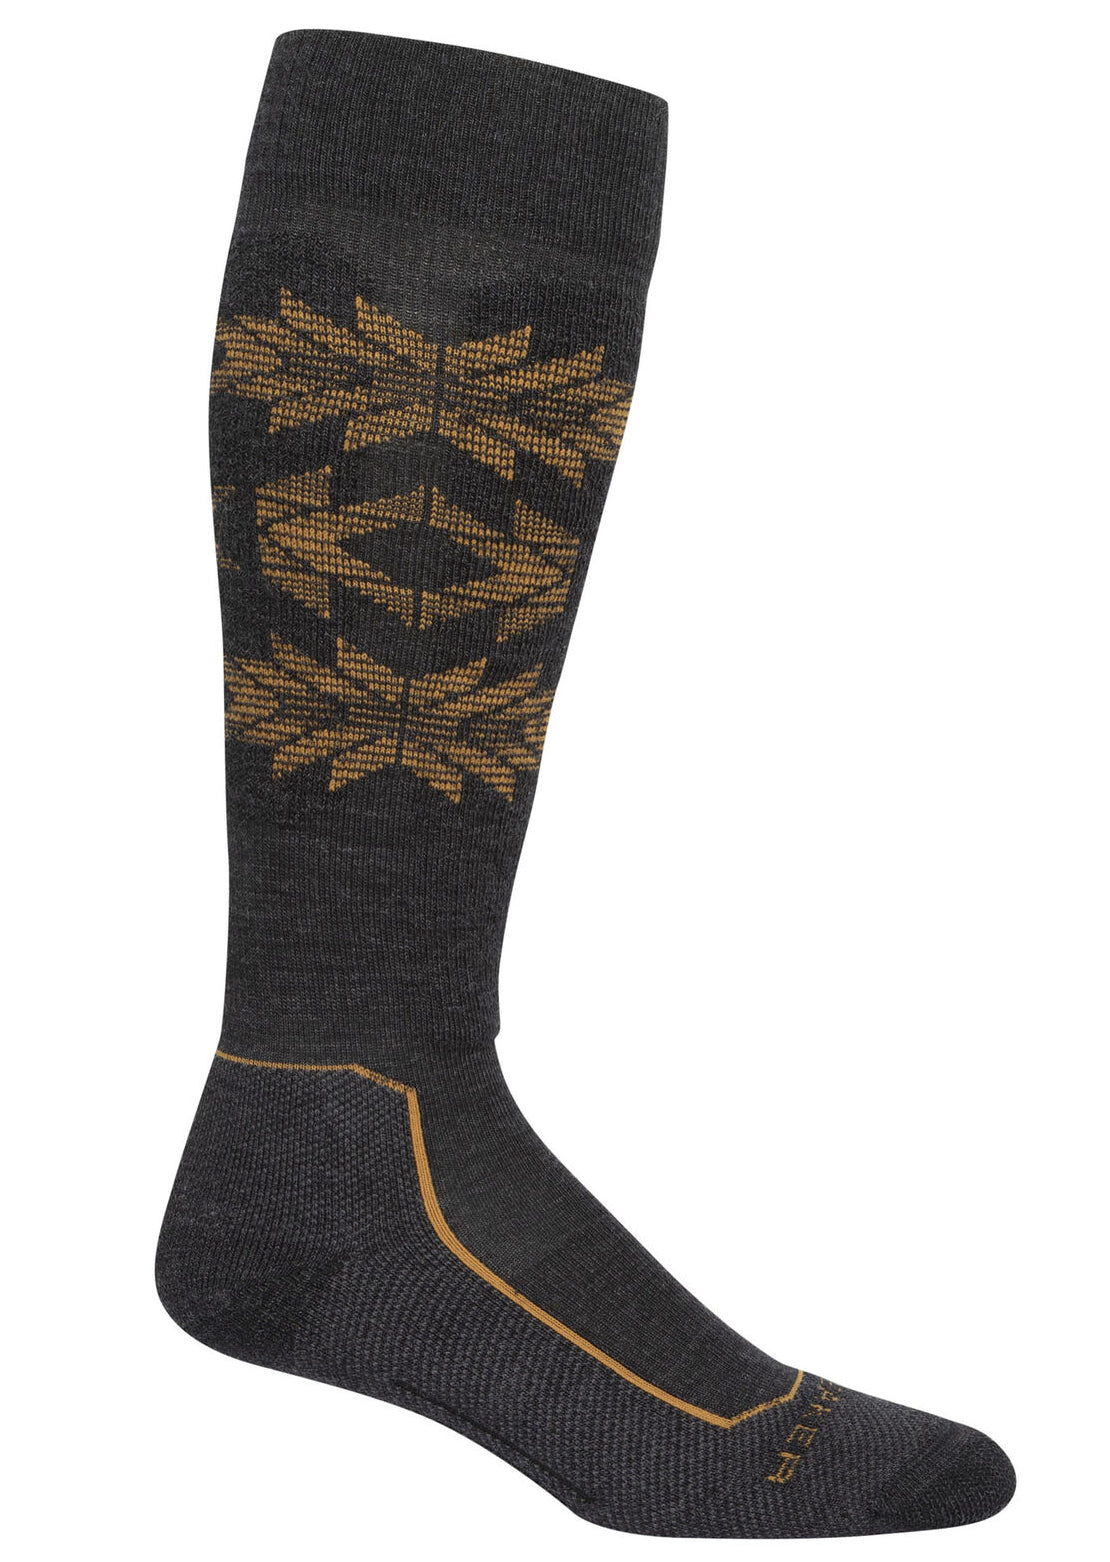 Icebreaker Men's Merino Ski+ Light Over The Calf Socks Jet Heather